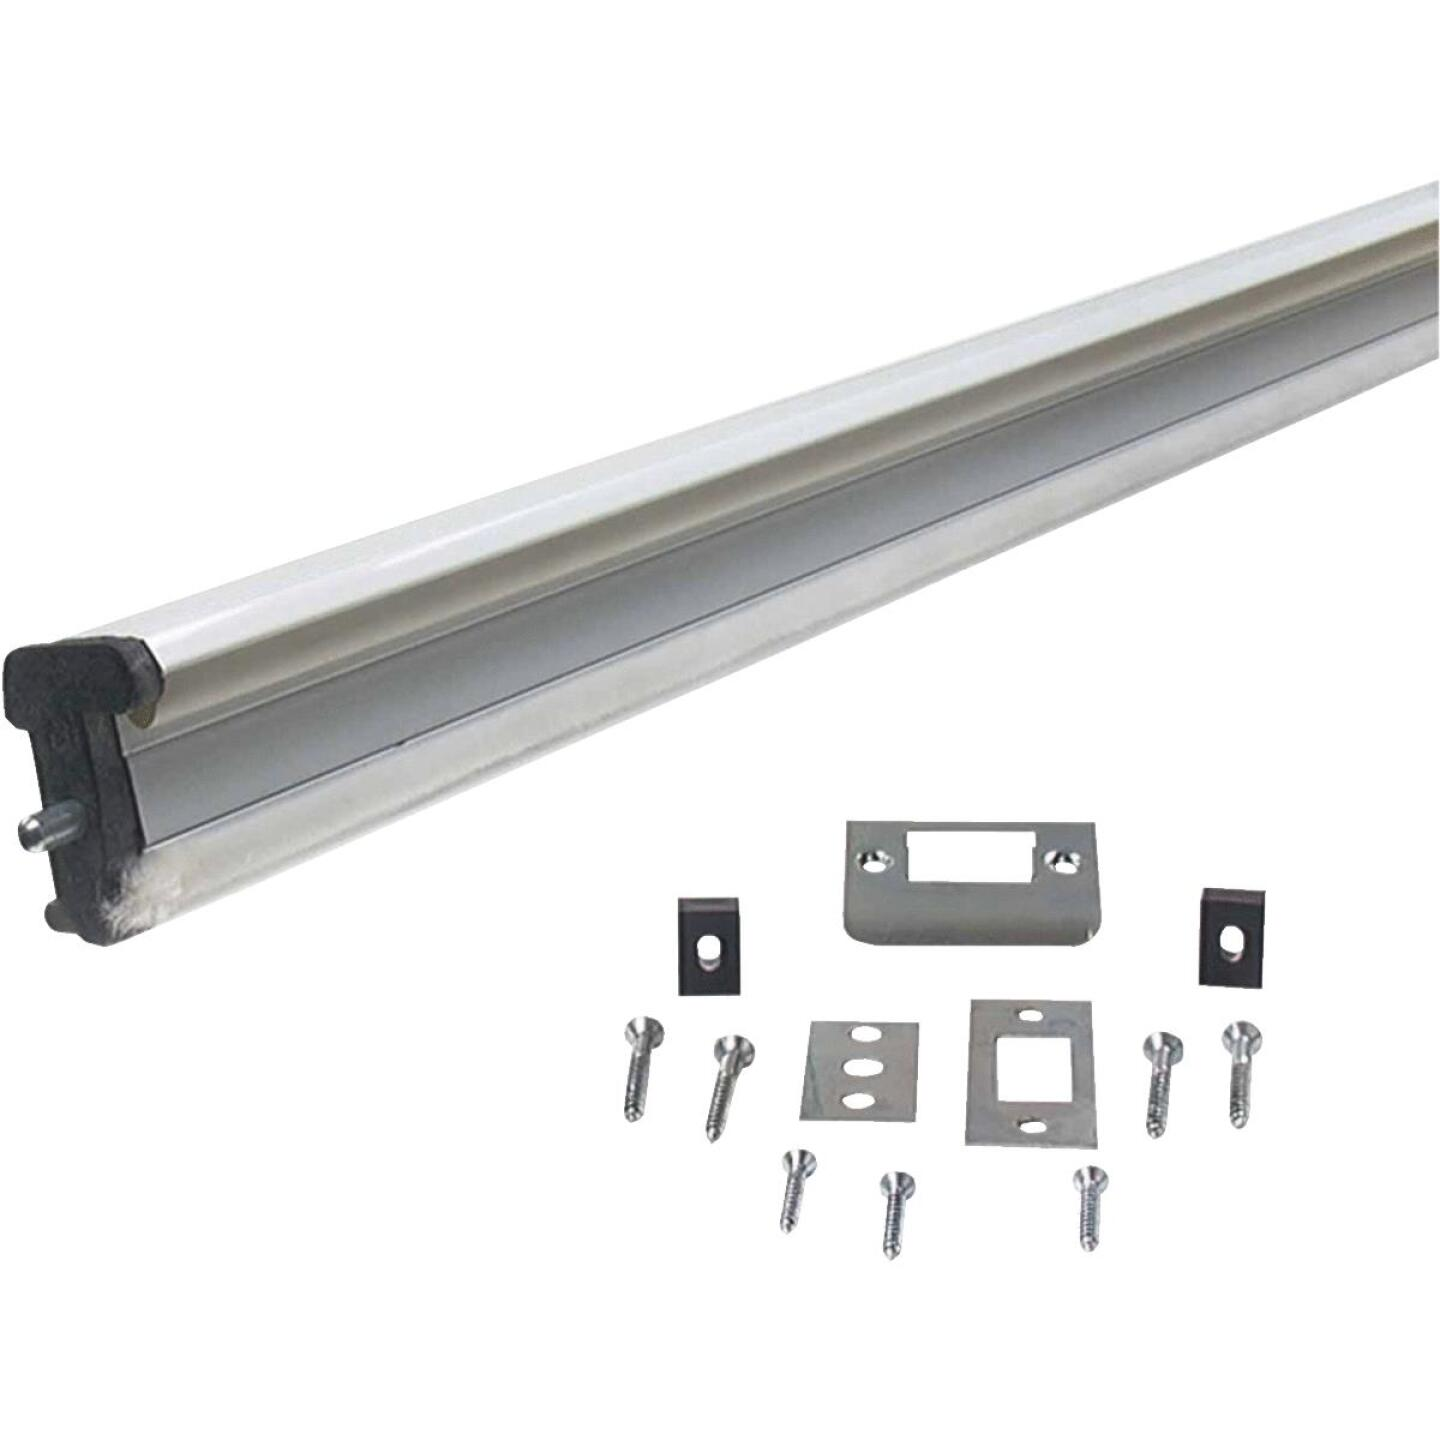 M-D Ultra 2-1/4 In. x 80 In. White Nail-on Door Weatherstrip Image 1